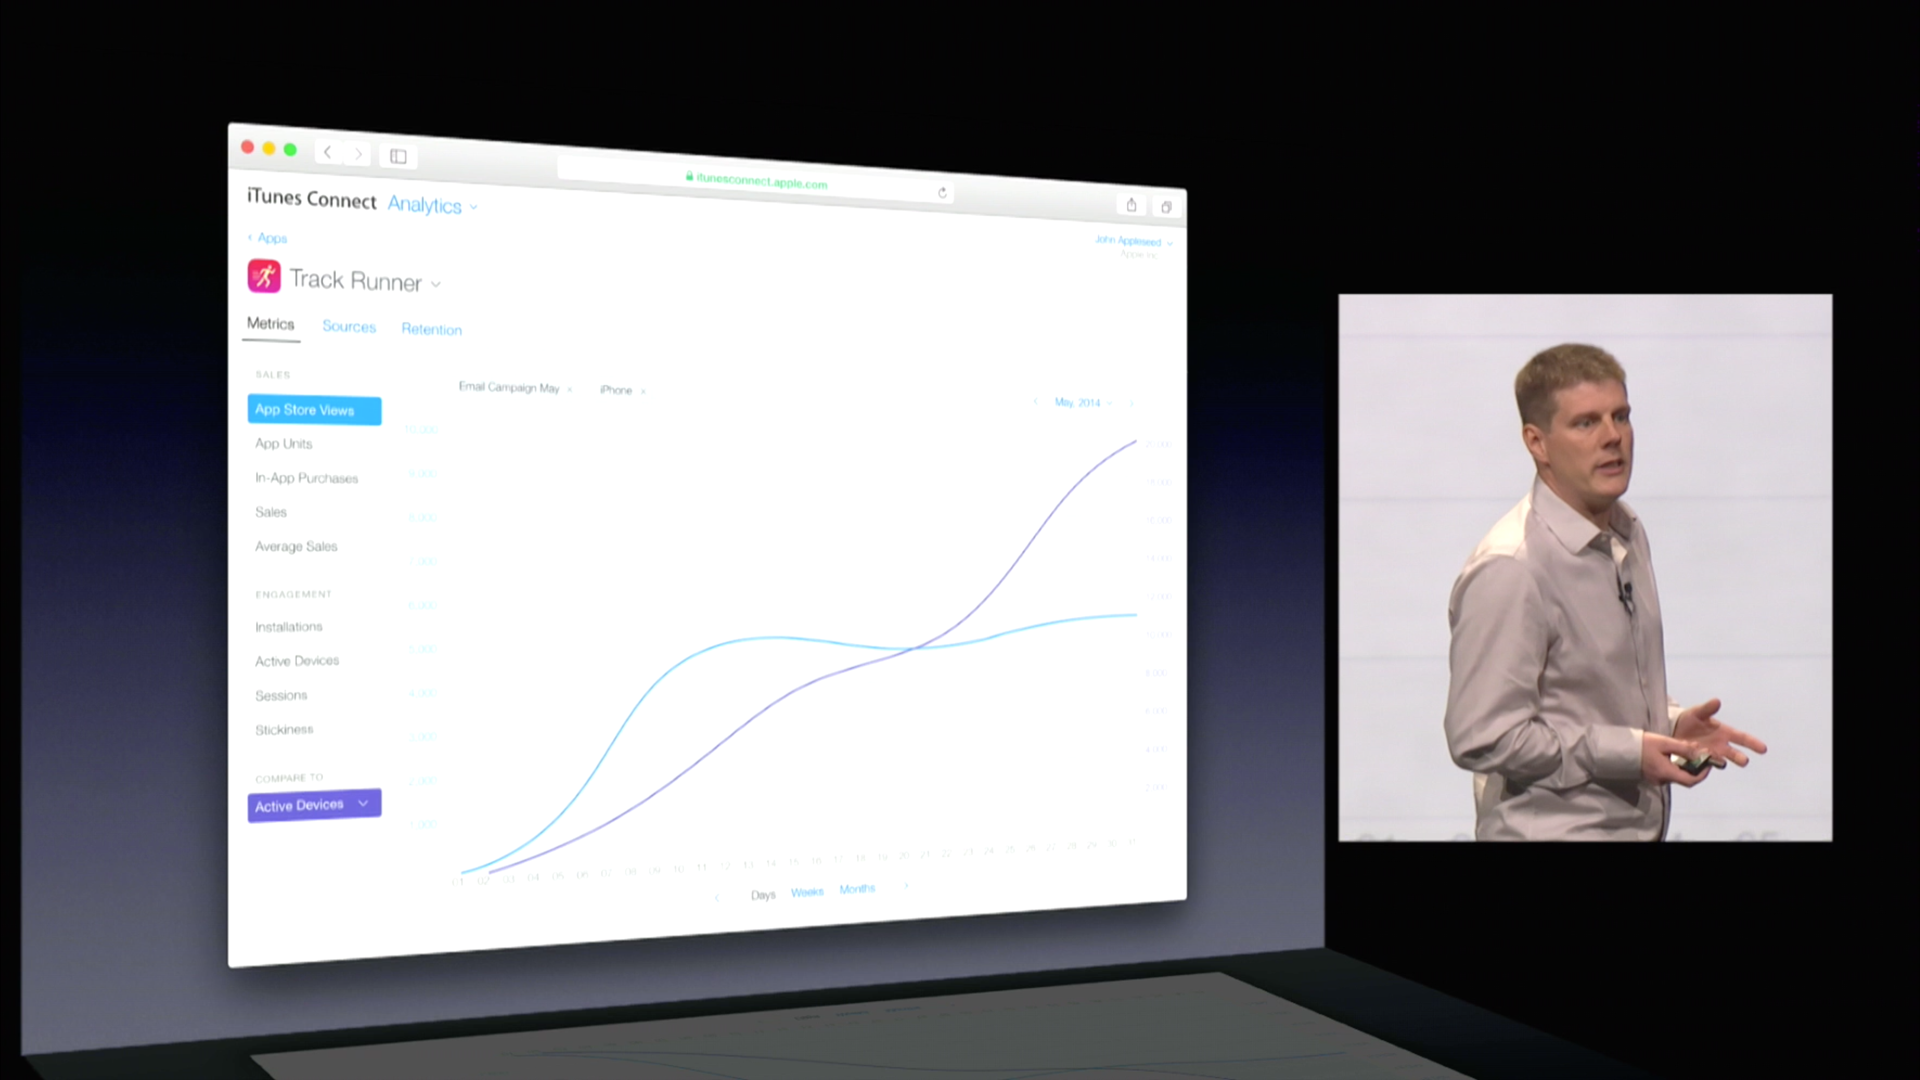 Slide from the Platforms State of the Union session at WWDC 2014 presenting app analytics in iTunes Connect